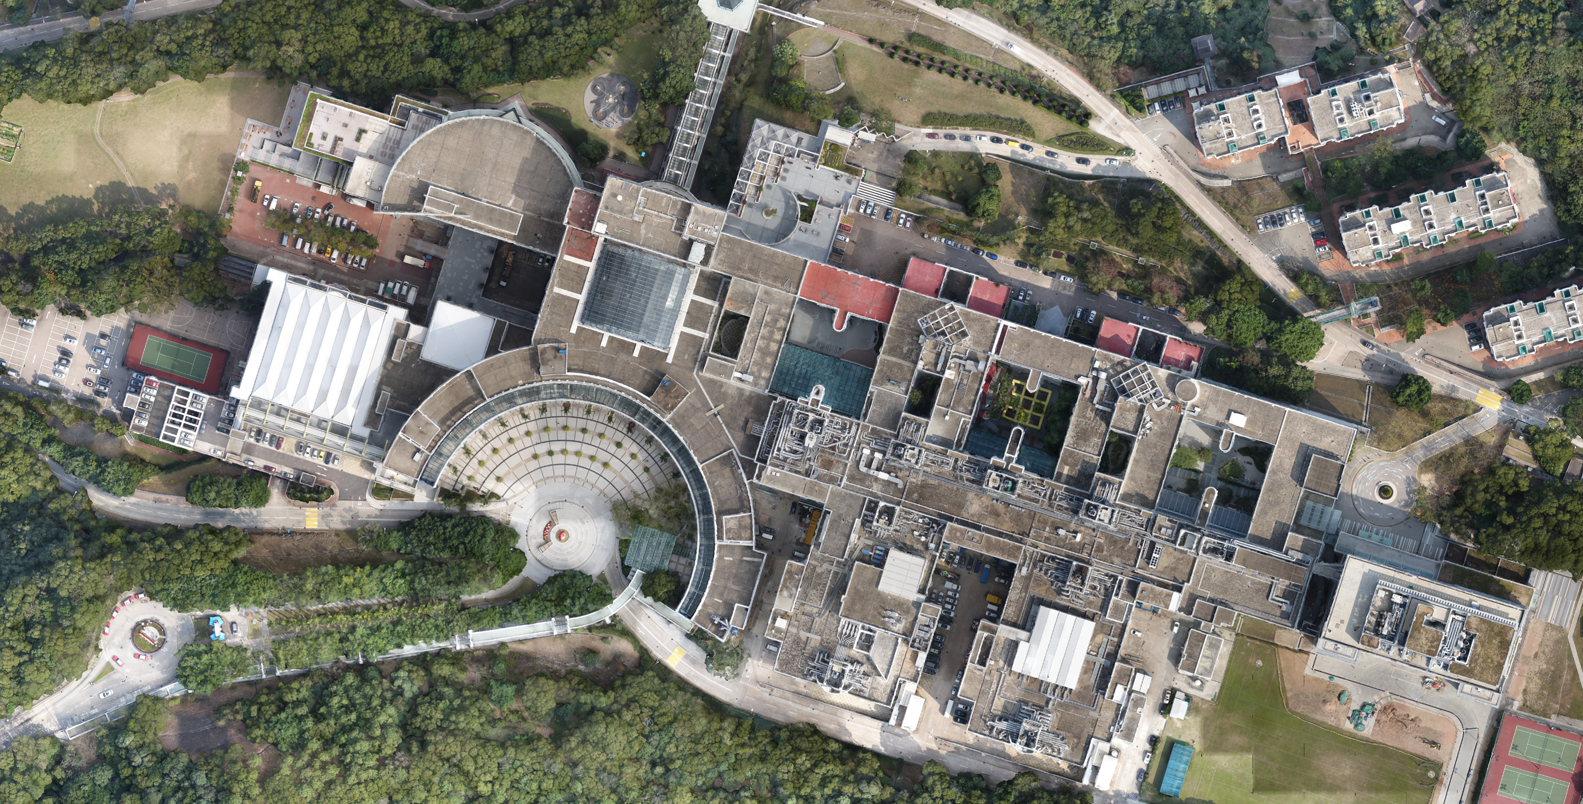 Create 3D models and maps from your drone photos in three steps